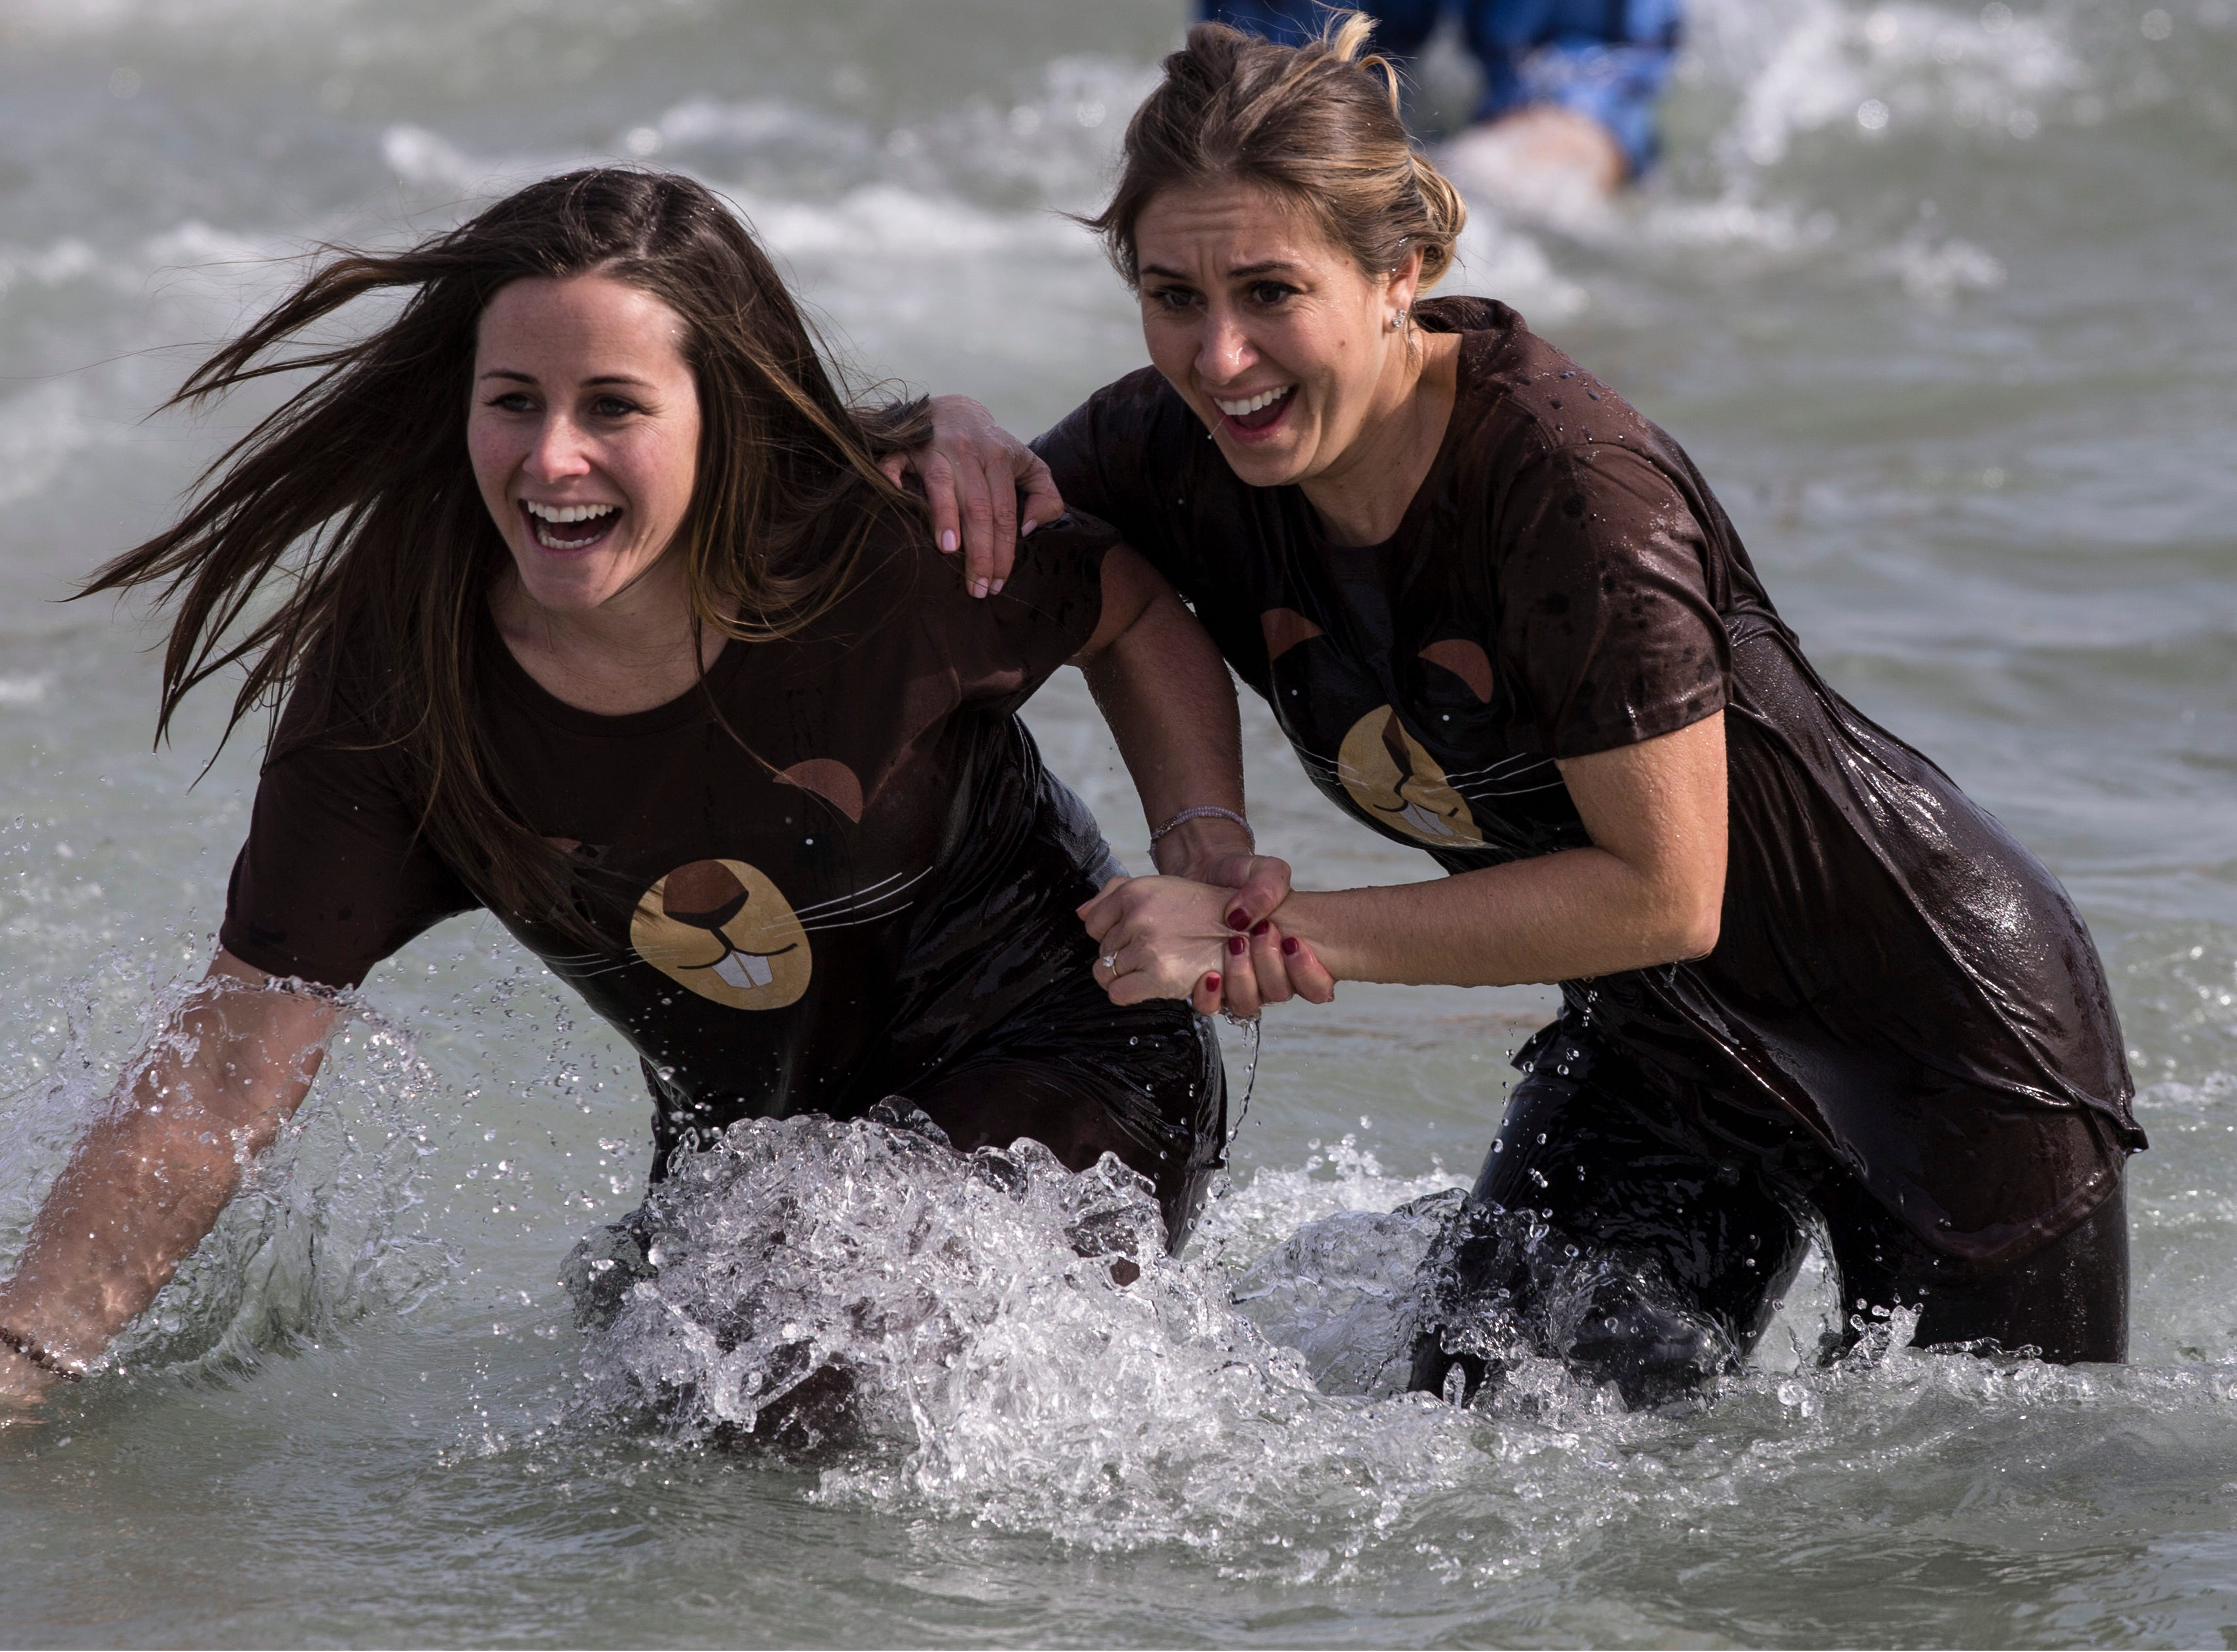 The annual Valentine Plunge to raise funds for Joan Dancy and P.A.L.S., which raises money to support local people with ALS (Lou Gehrig's disease), takes place at Manasquan Beach.       Manasquan, NJSaturday, February 2, 2019